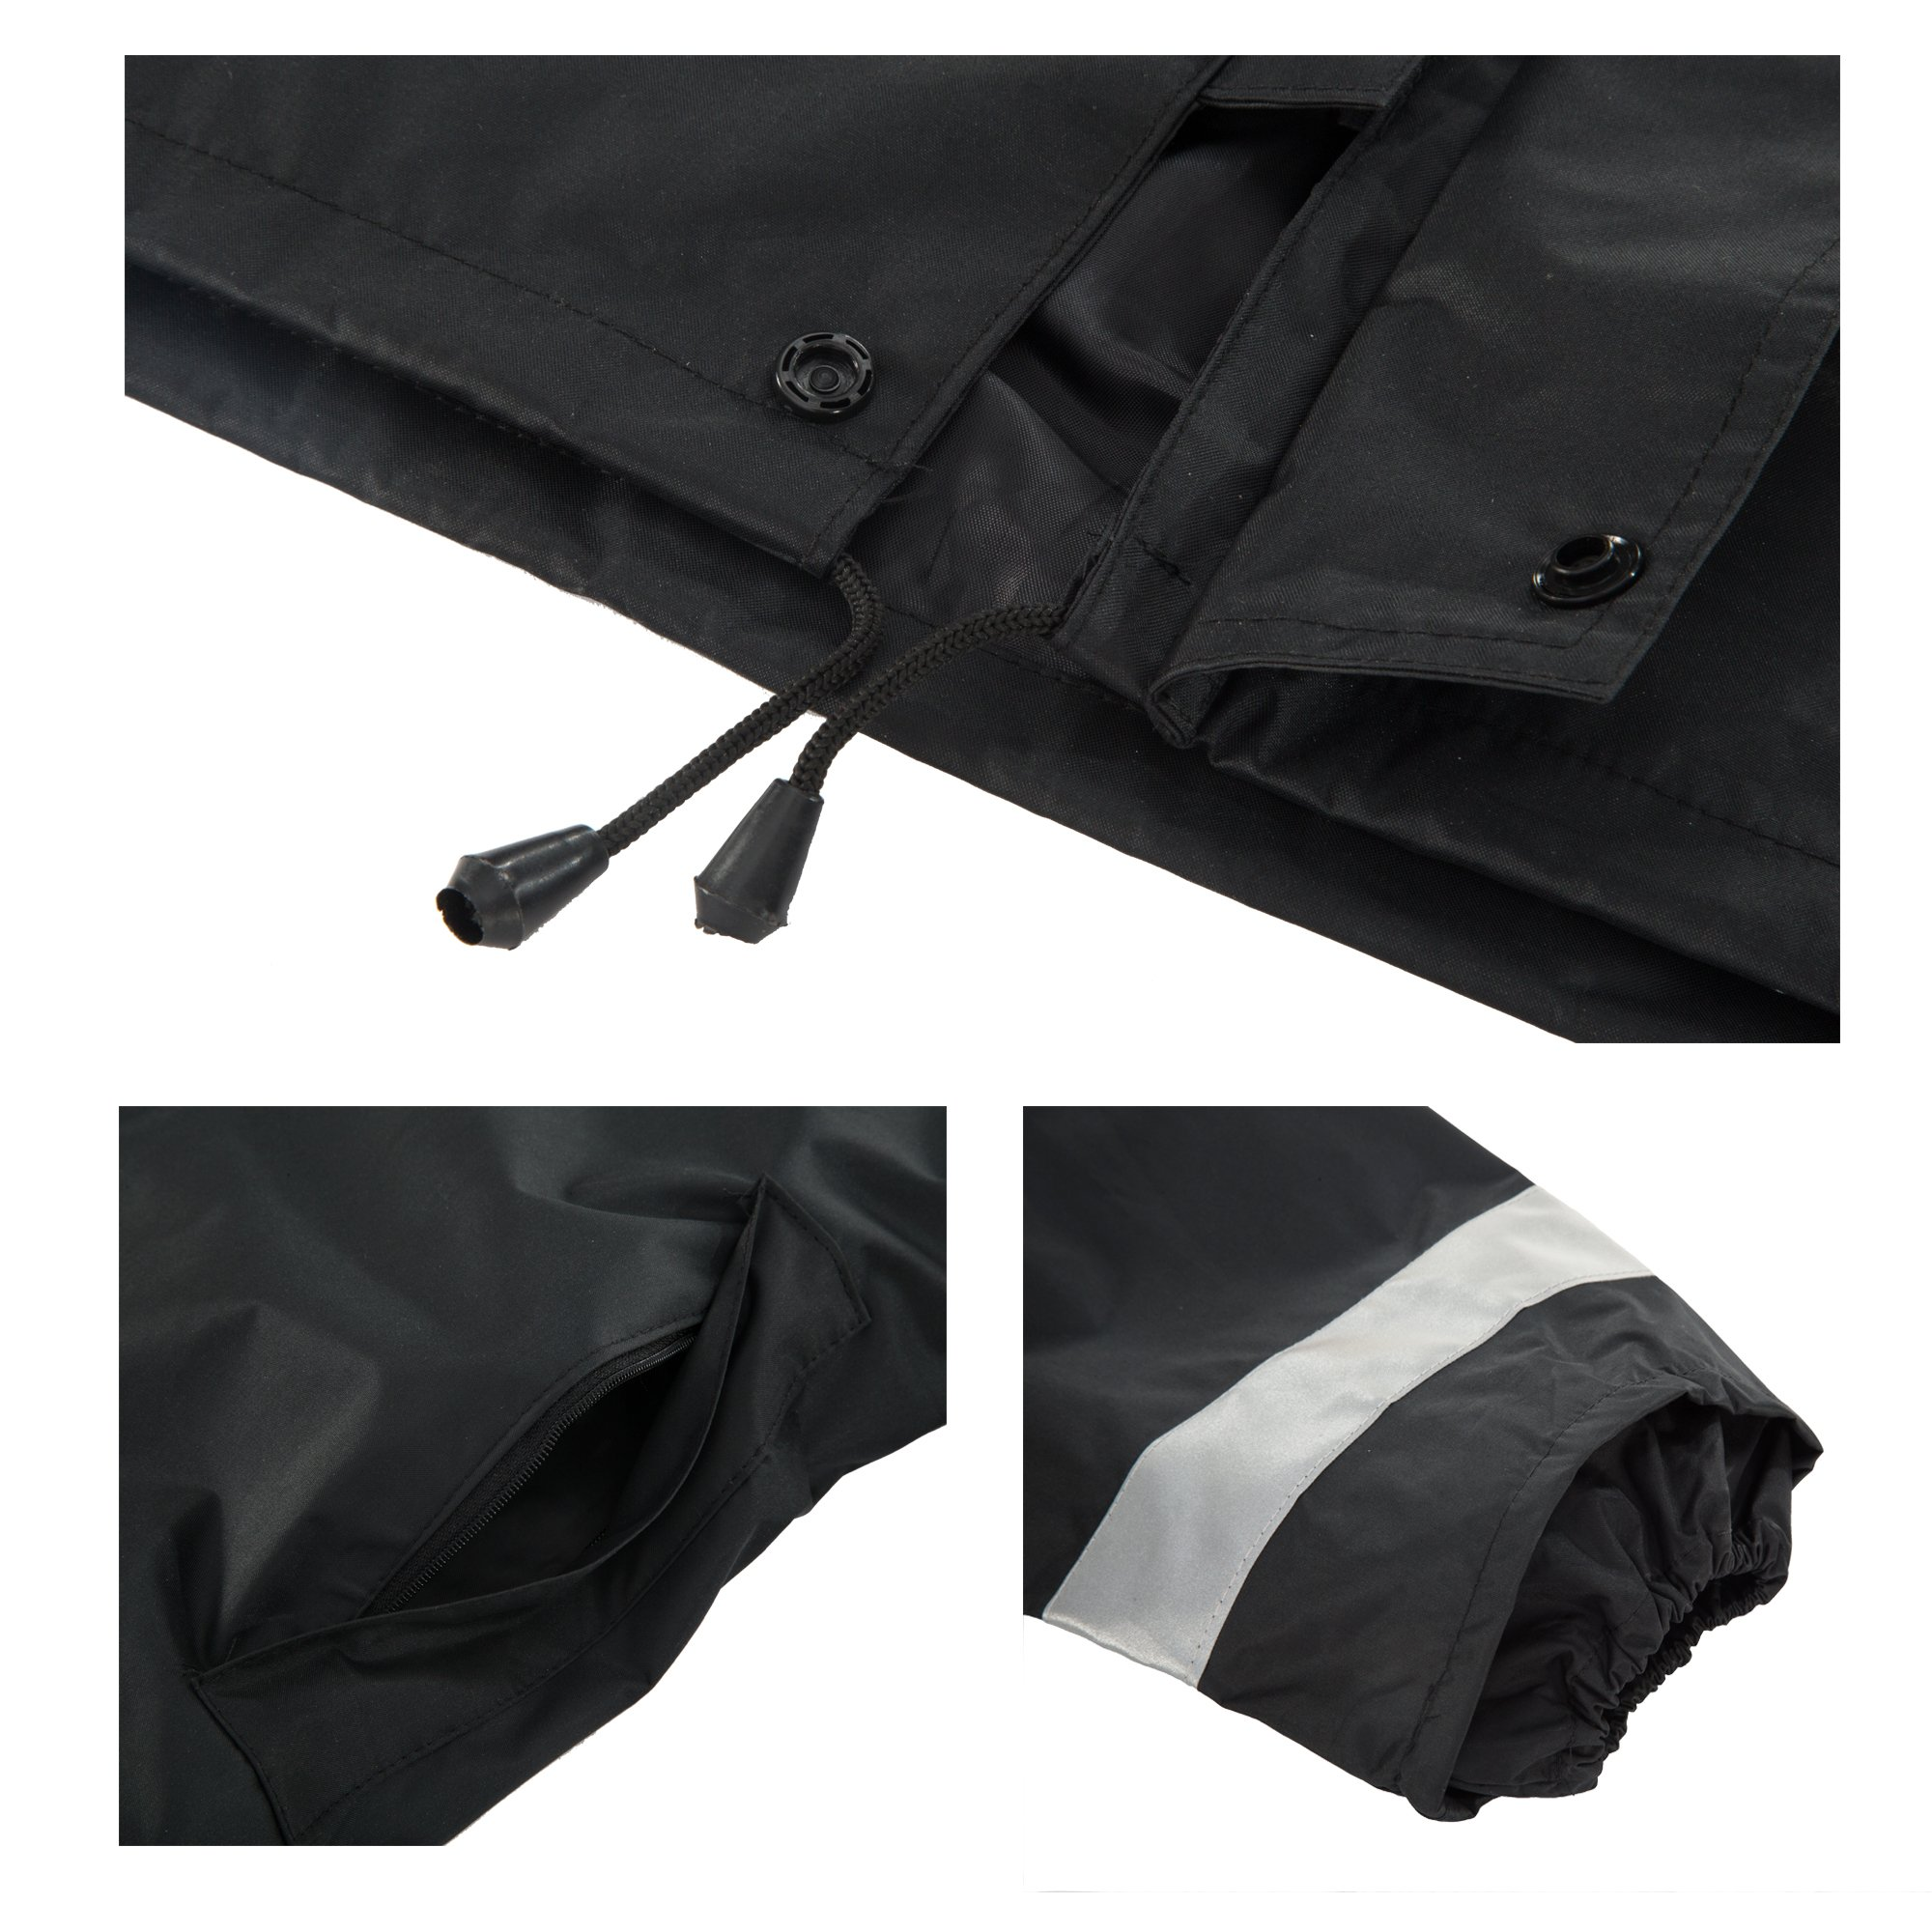 Maiyu Motorcycle Rain Suit Waterproof Rain Jacket and Pants Set 2 Piece Rain Gear For Adult by Maiyu (Image #1)